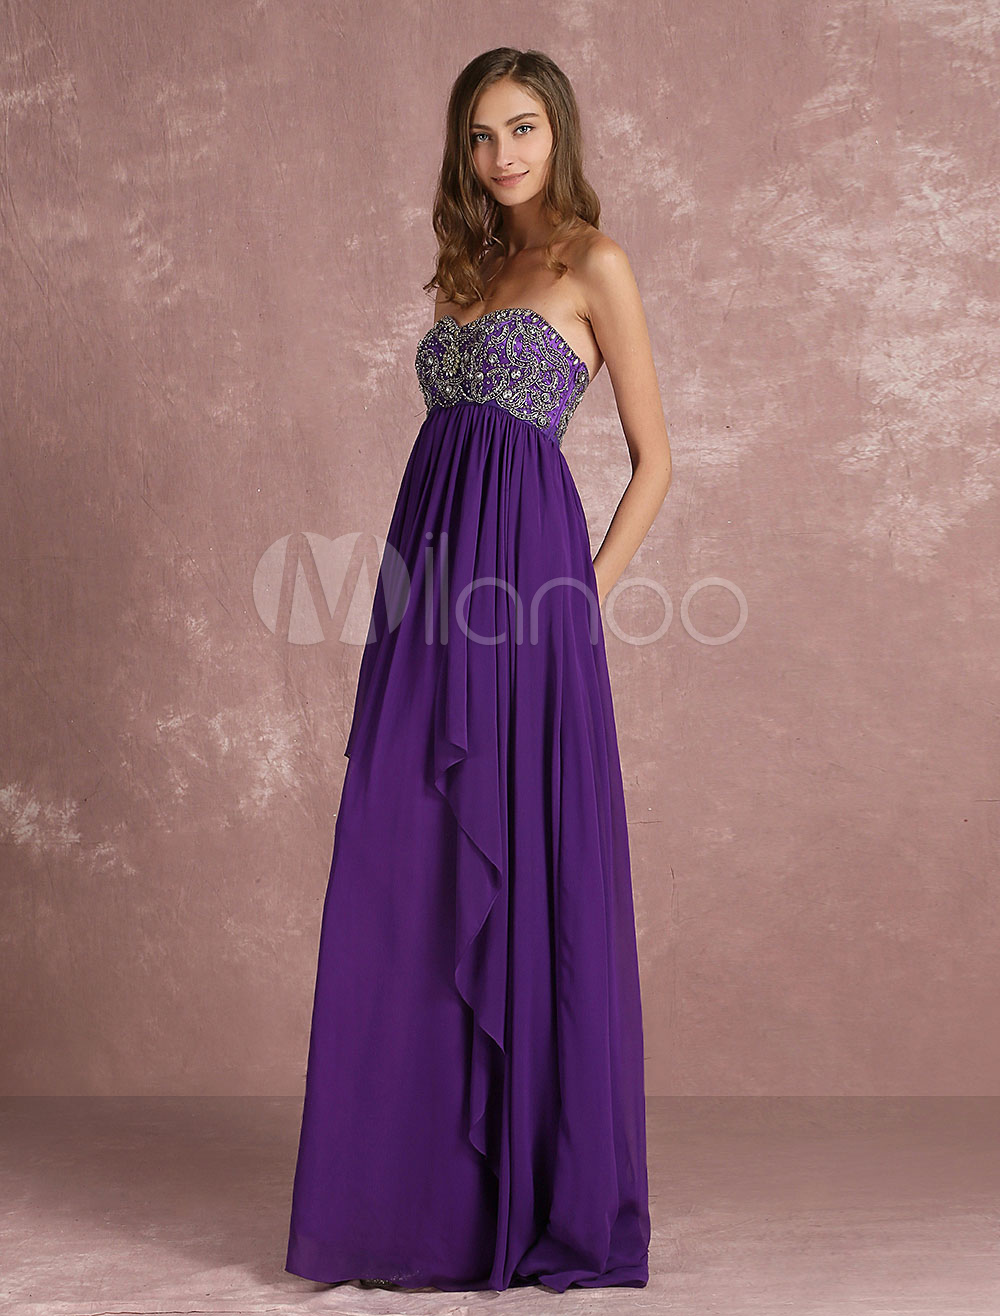 Buy Lavender Prom Dress Chiffon Rhinestones Beaded Occasion Dress Strapless Sweetheart Sleeveless Pleated A Line Floor Length Party Dress for $180.89 in Milanoo store